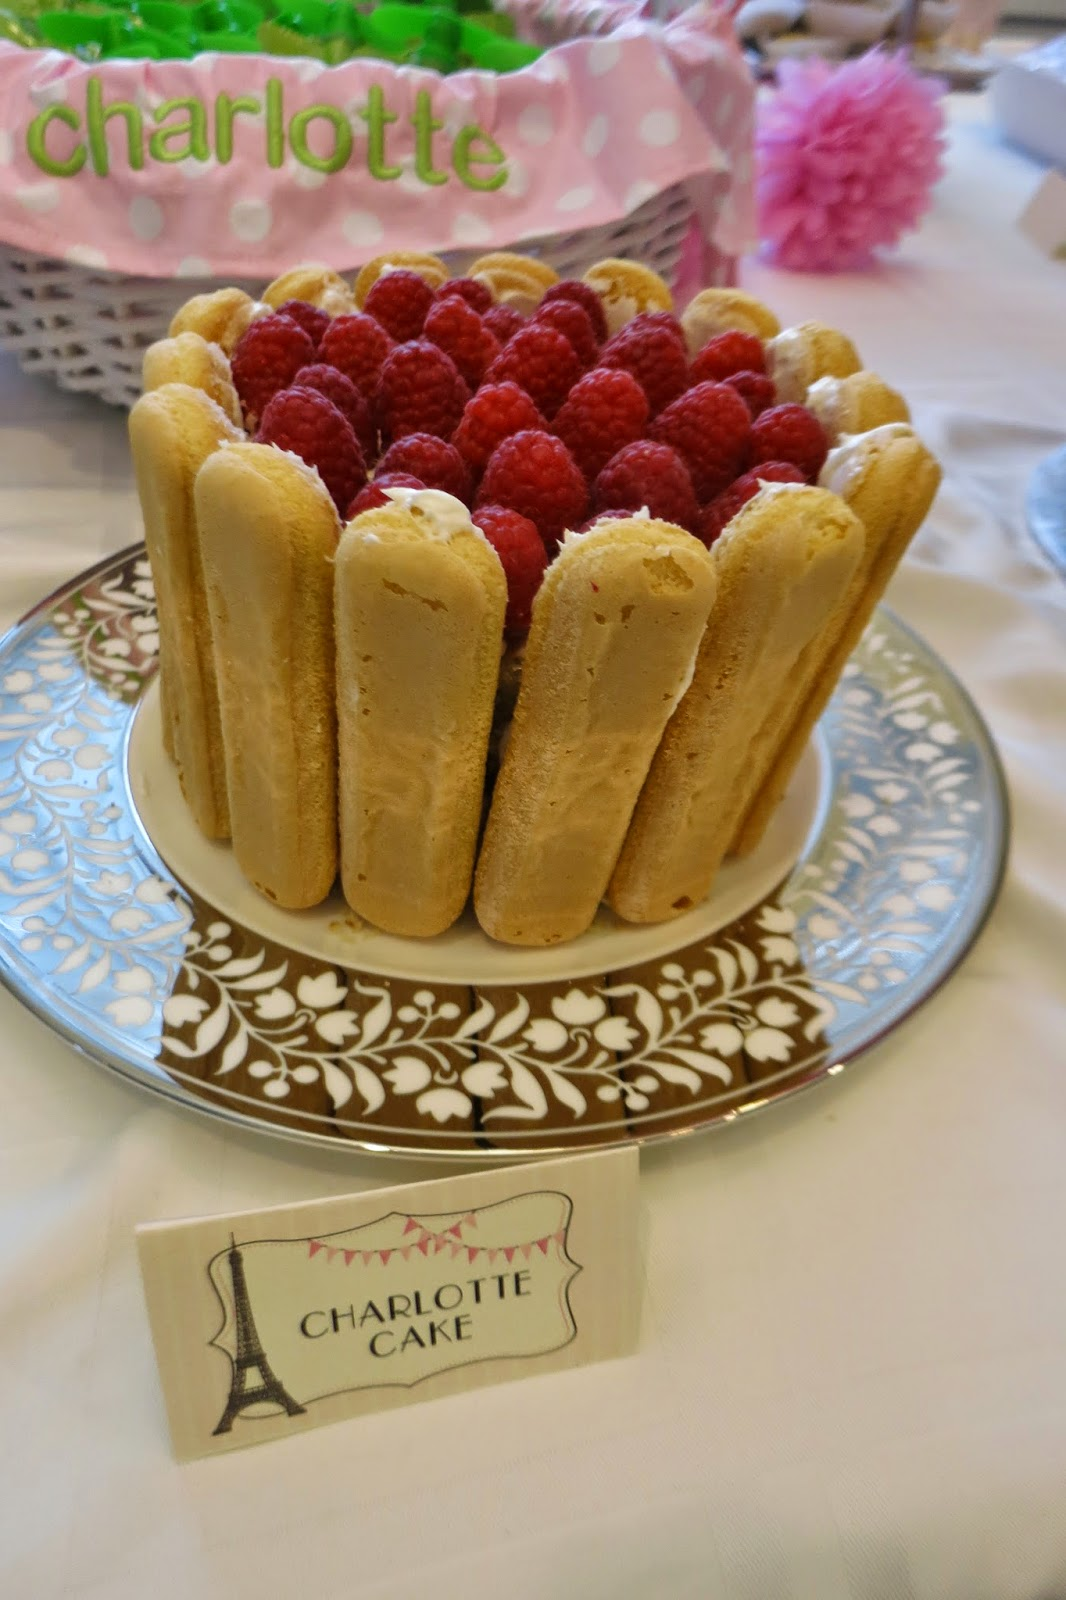 Paris-Themed Birthday Party: Charlotte Cake